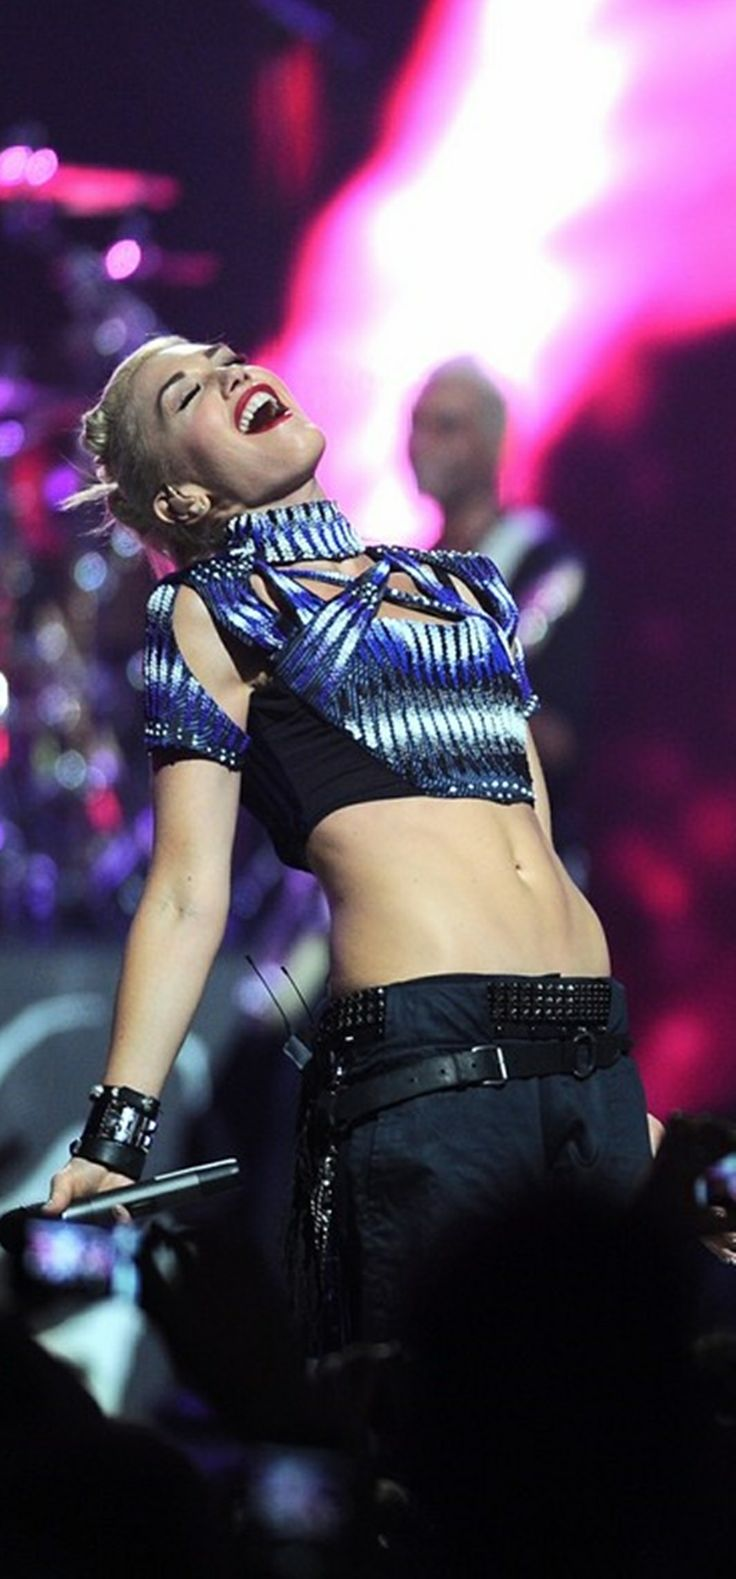 The 25+ best Gwen stefani bikini ideas on Pinterest | Gwen ... гвен стефани песни